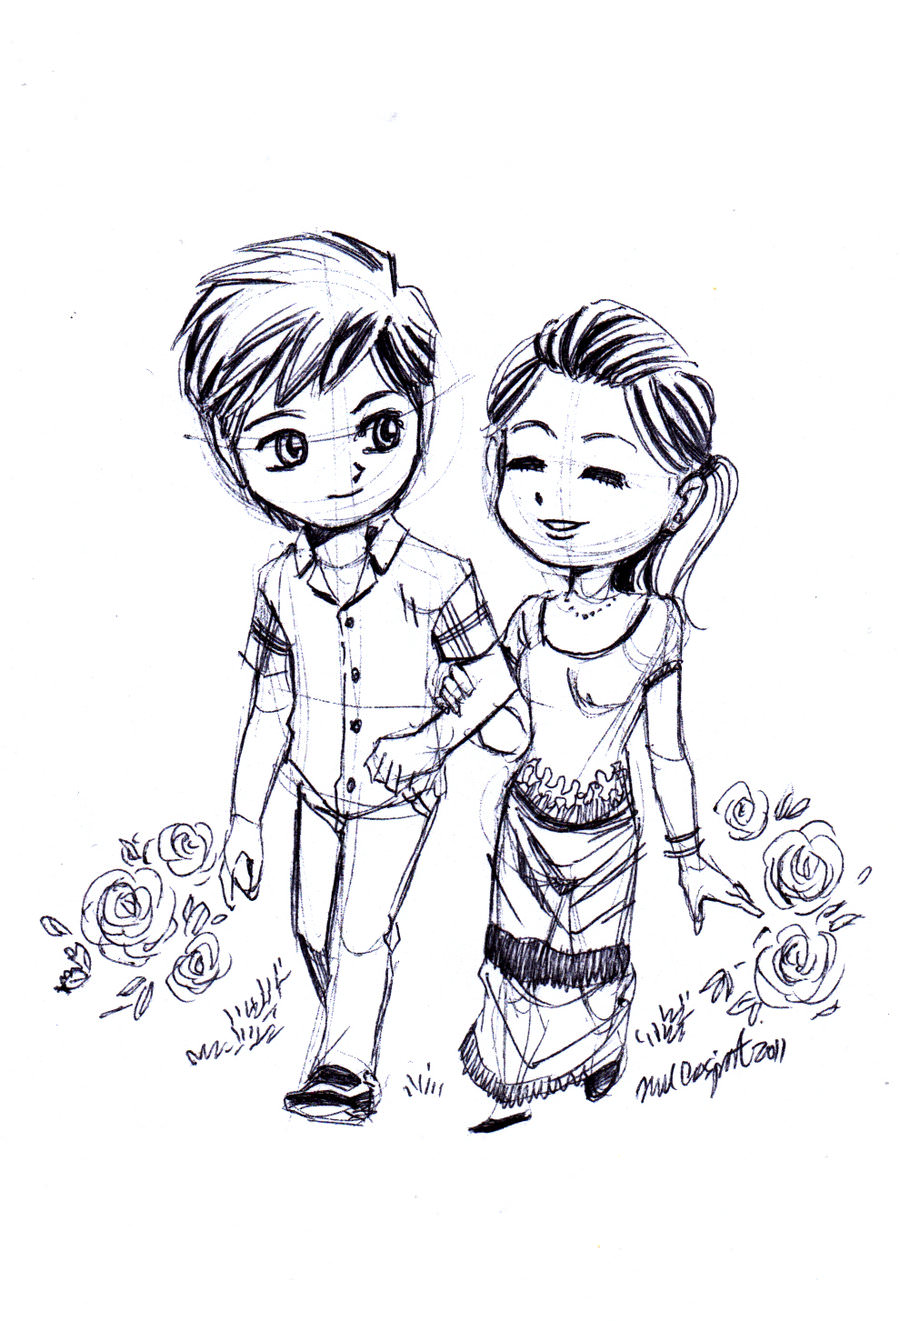 Cute couple pencil drawing free download best cute couple pencil